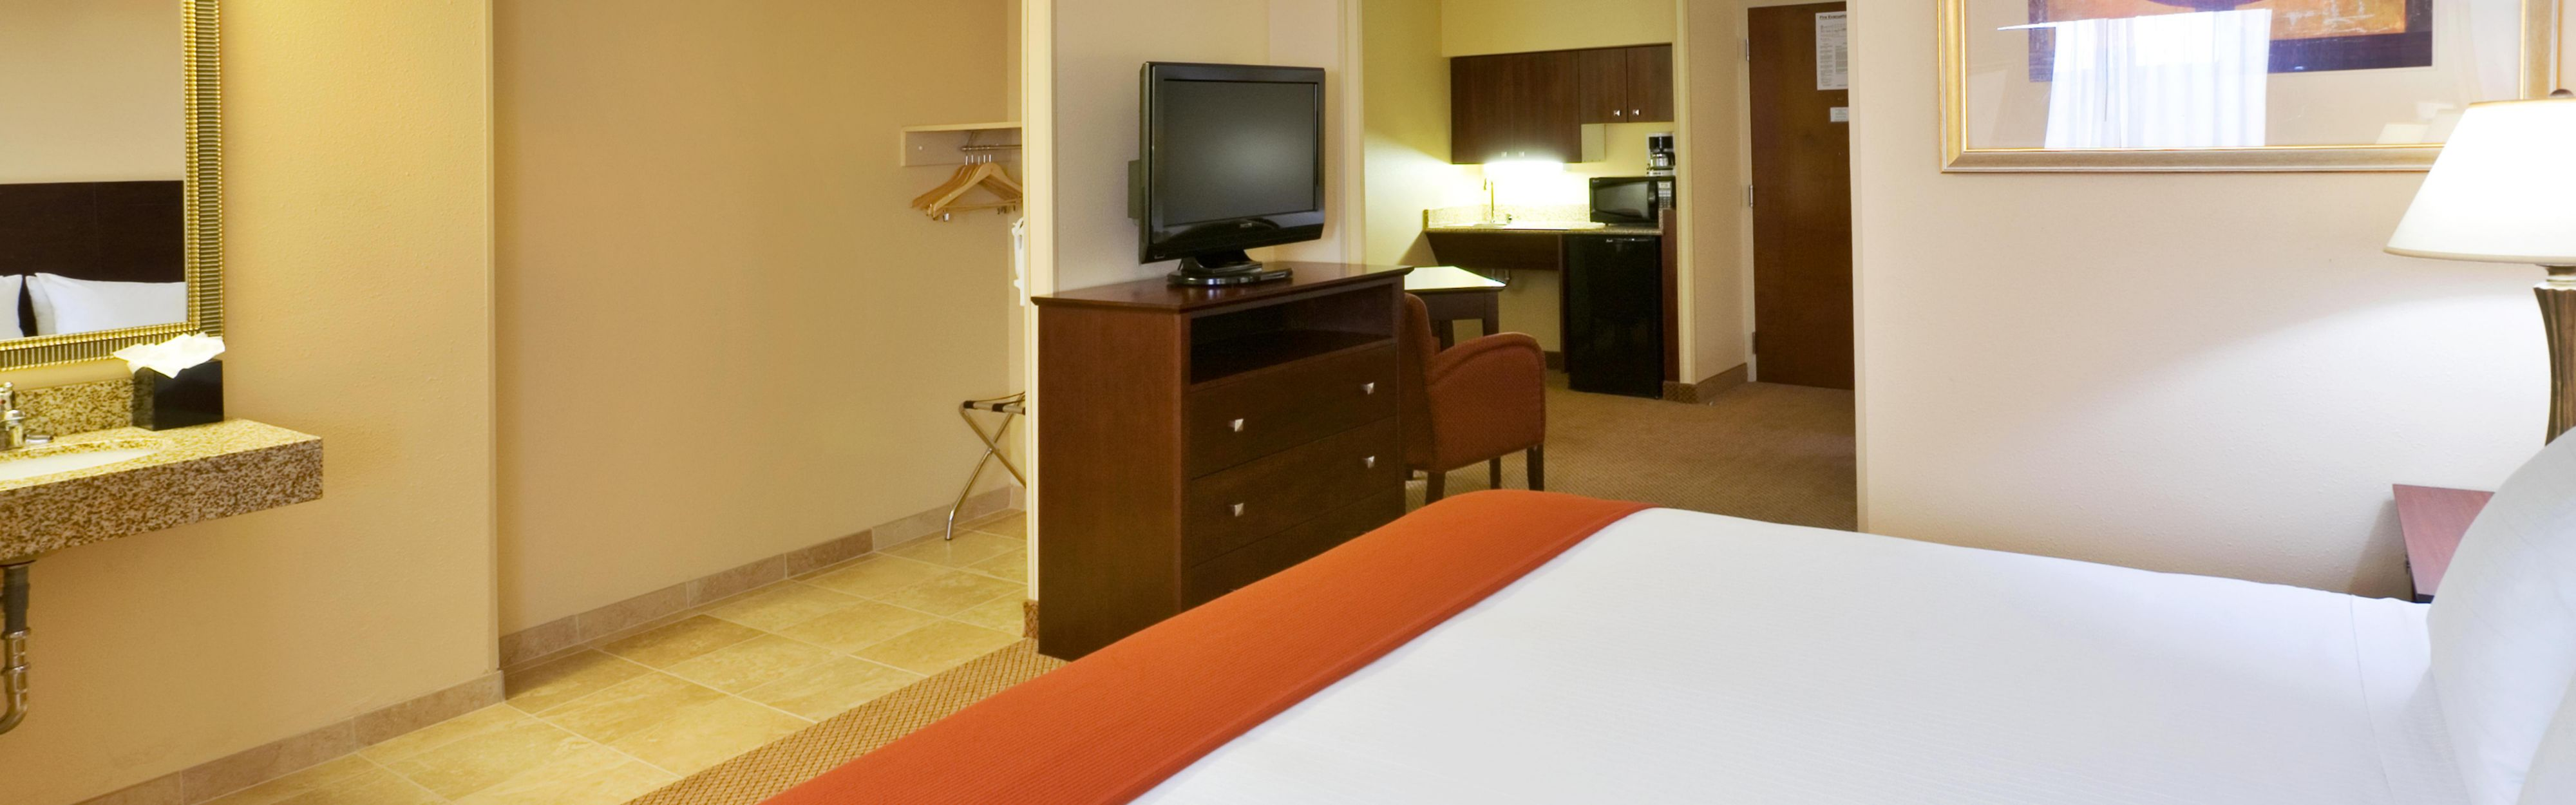 Holiday Inn Express & Suites Irving Conv Ctr - Las Colinas image 1